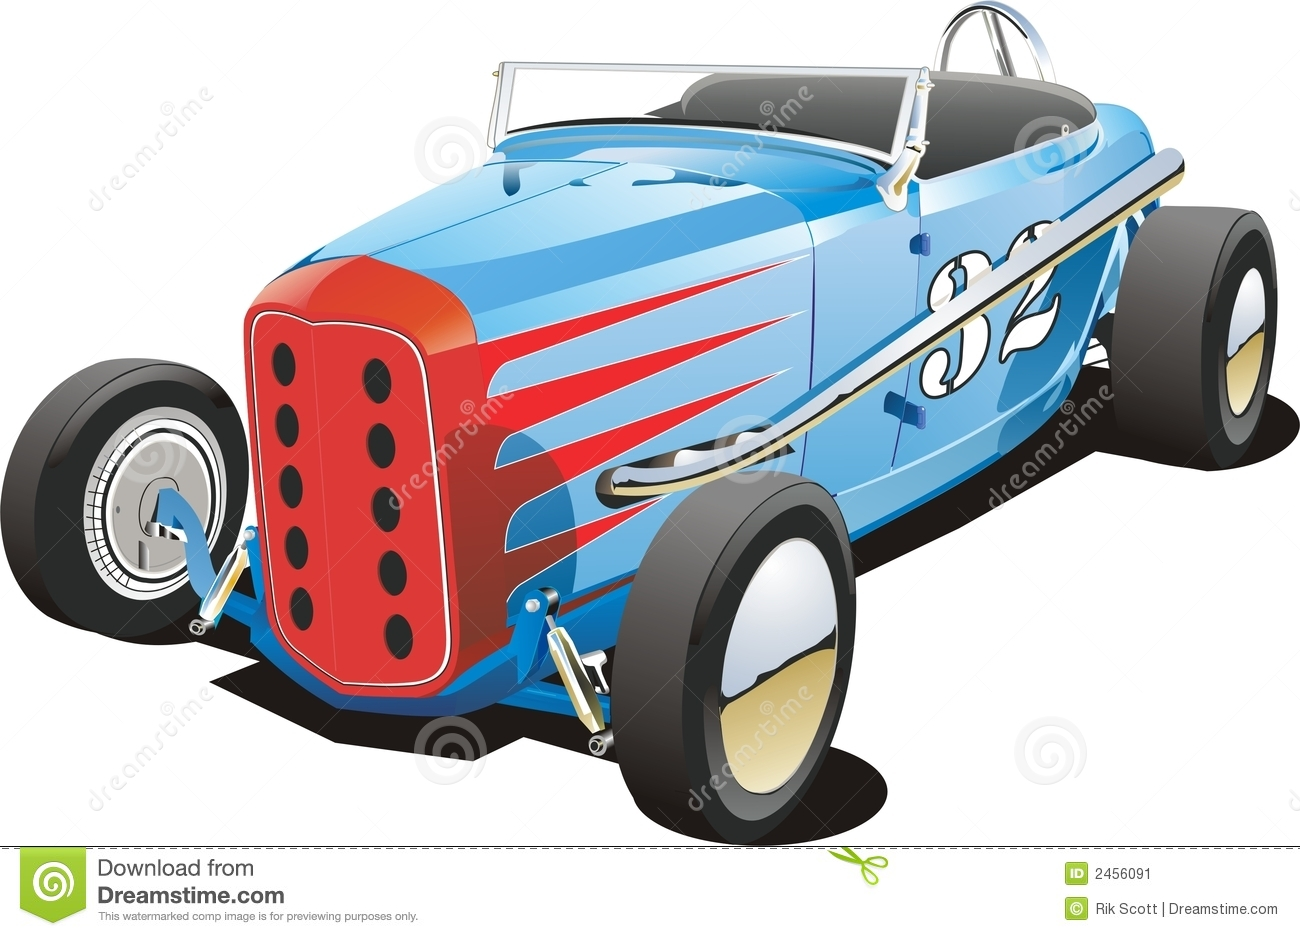 Old dirt track race car stock vector. Illustration of track - 2456091